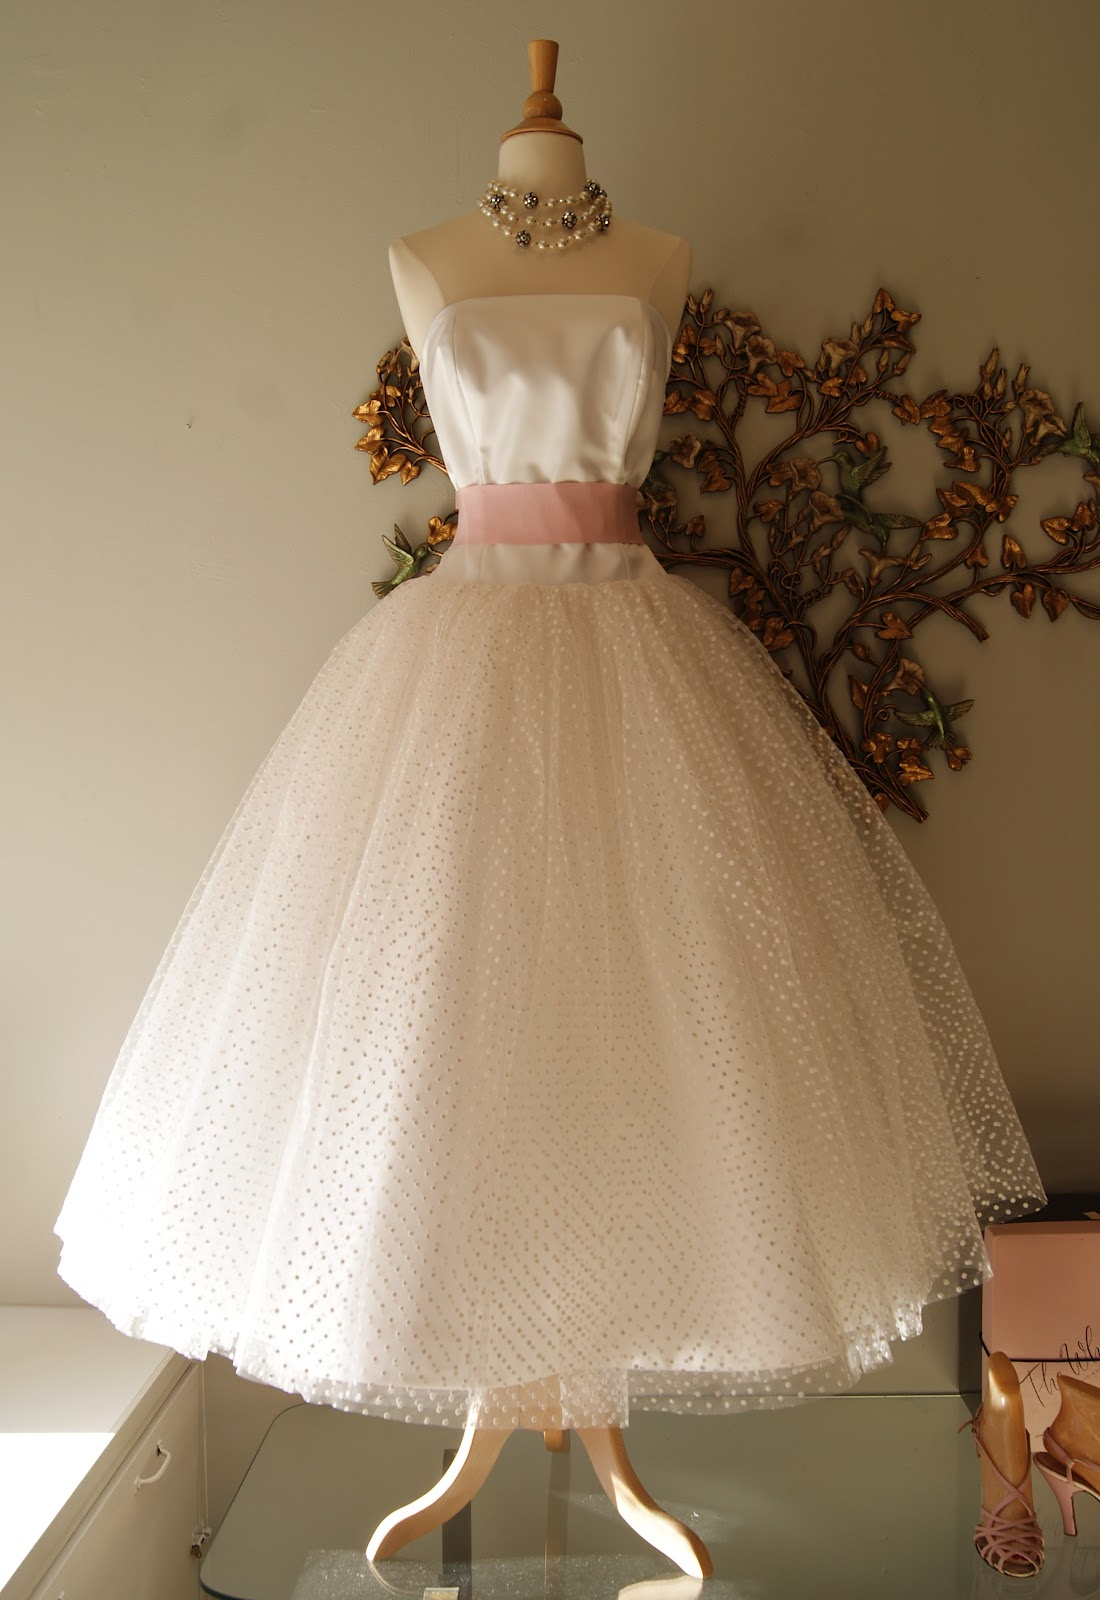 Vintage Style Wedding Dresses Portland : Xtabay vintage clothing boutique portland oregon top